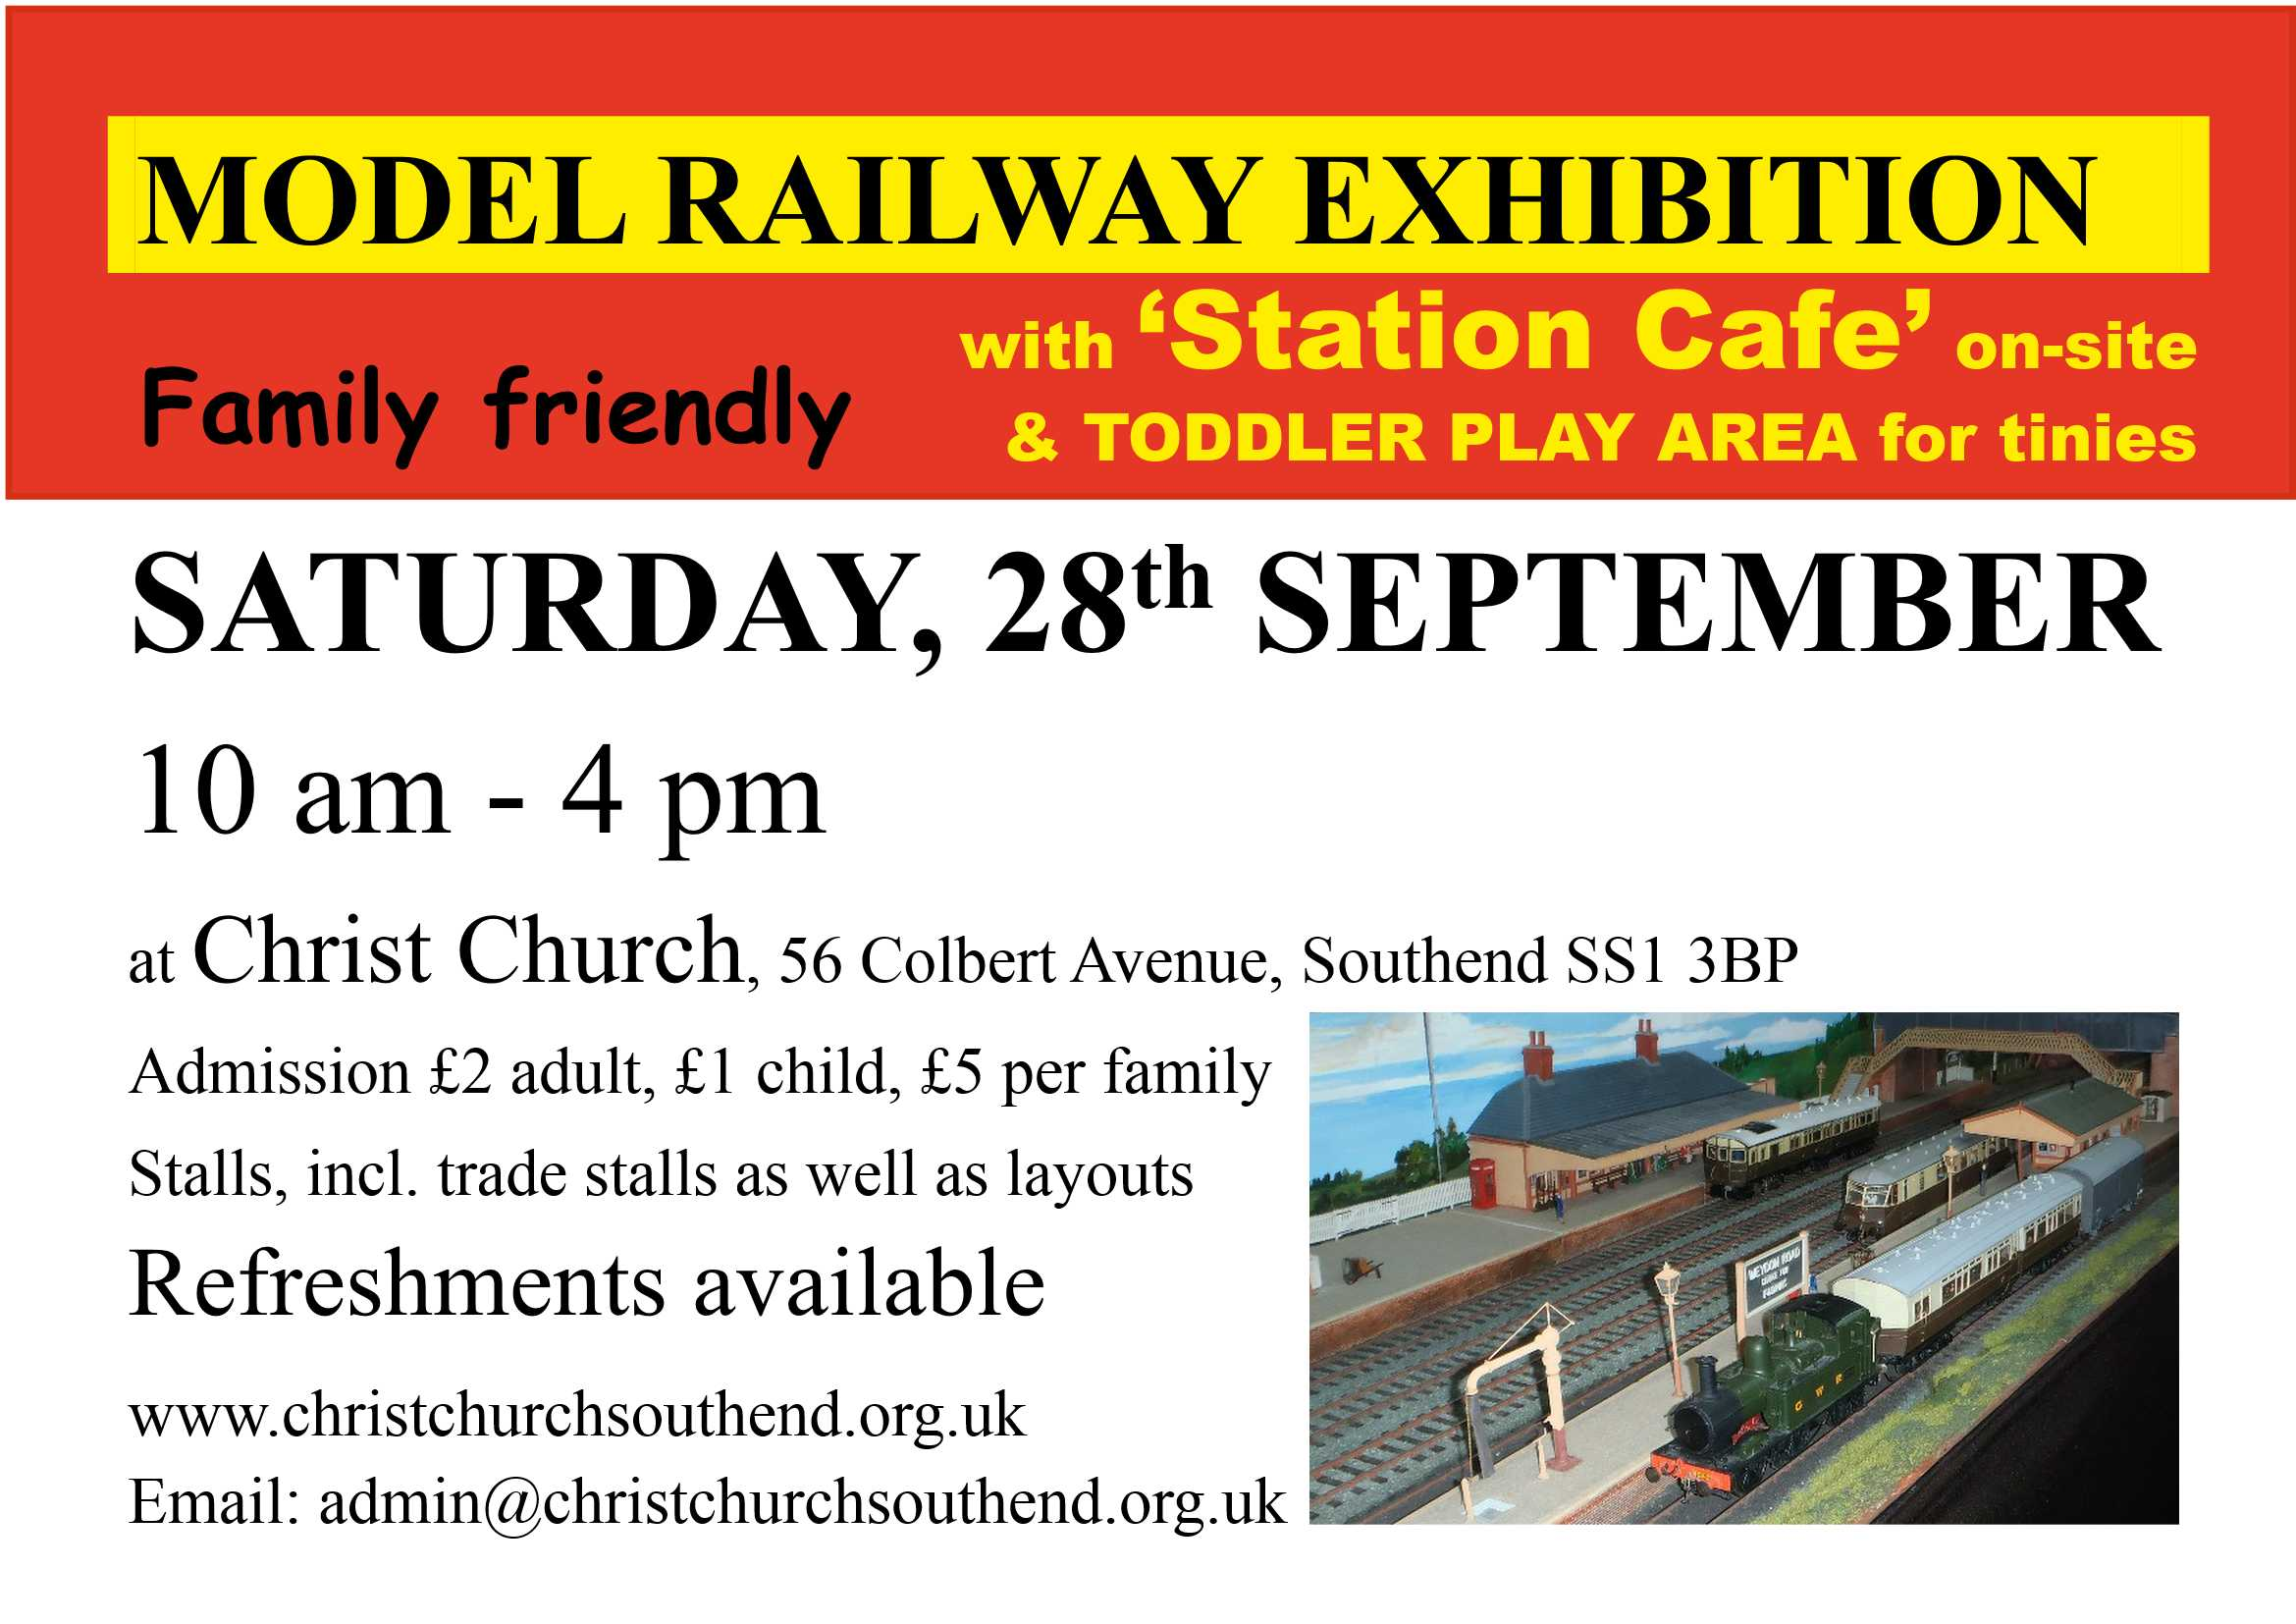 Model Railway Exhibition with Cafe and Toddler Play Area